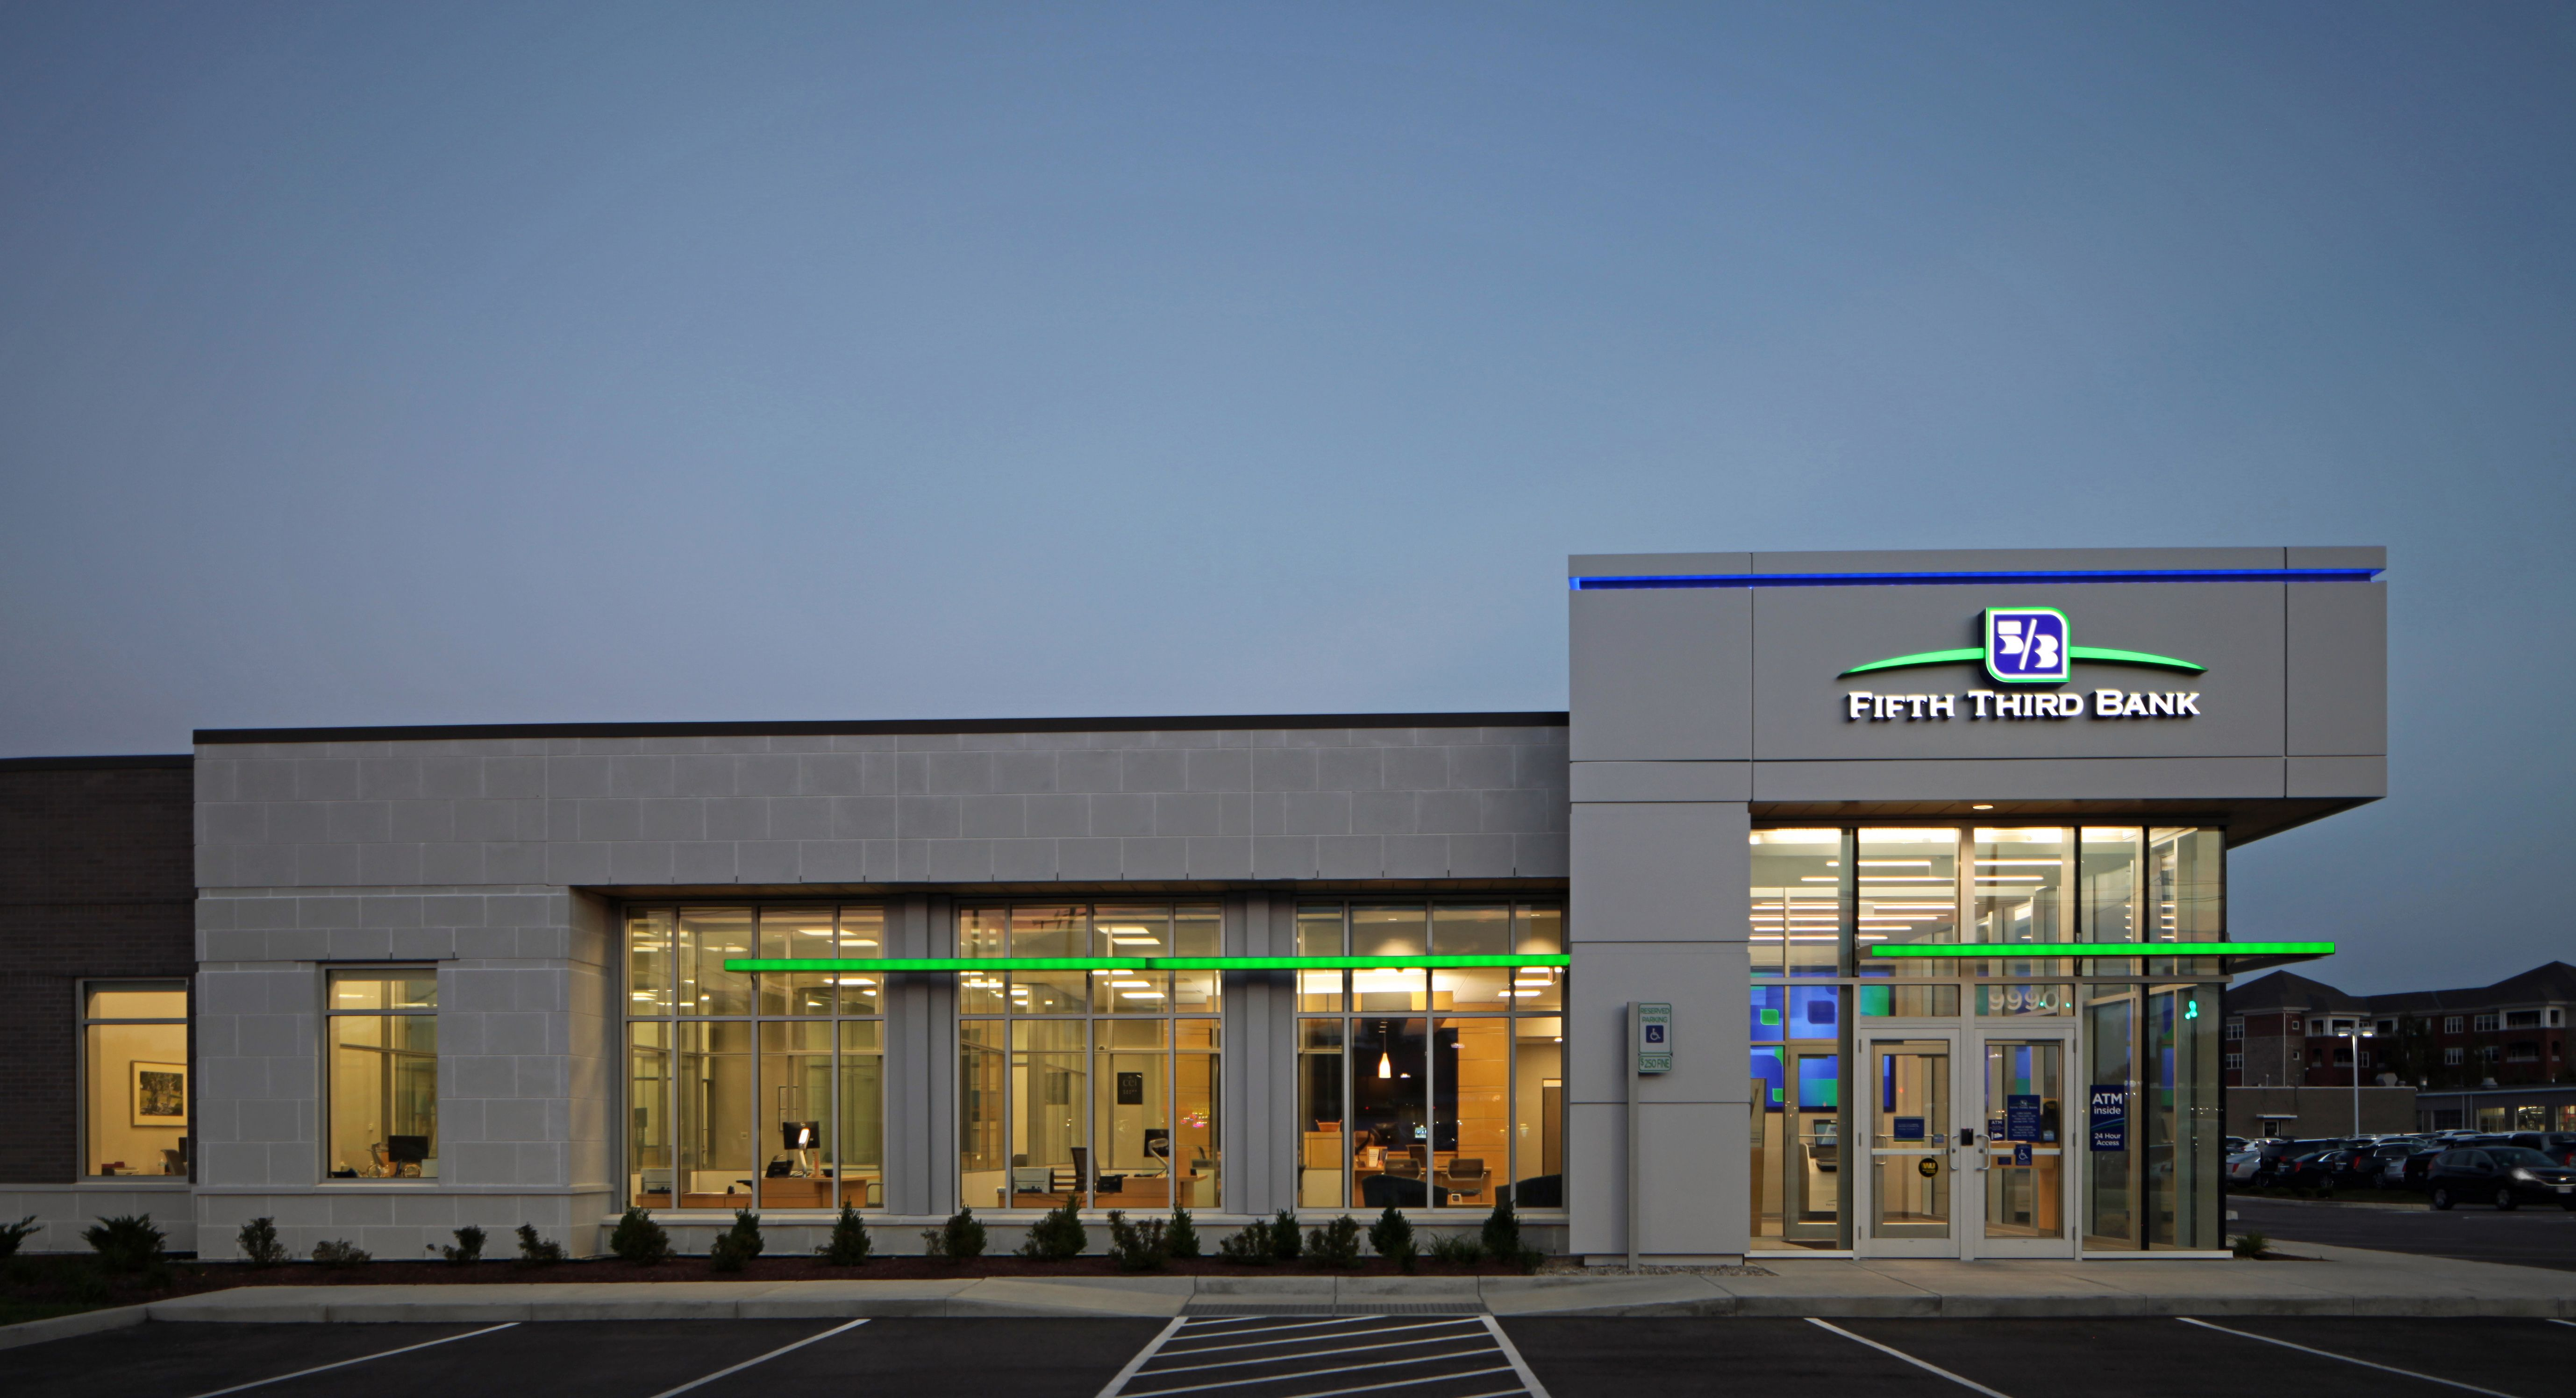 Fifth Third Bank Wanted A Fresh And Modern Look For Their New Branch Prototype That Represented The Changing Dir Bank Design Architecture Symbols Branch Design